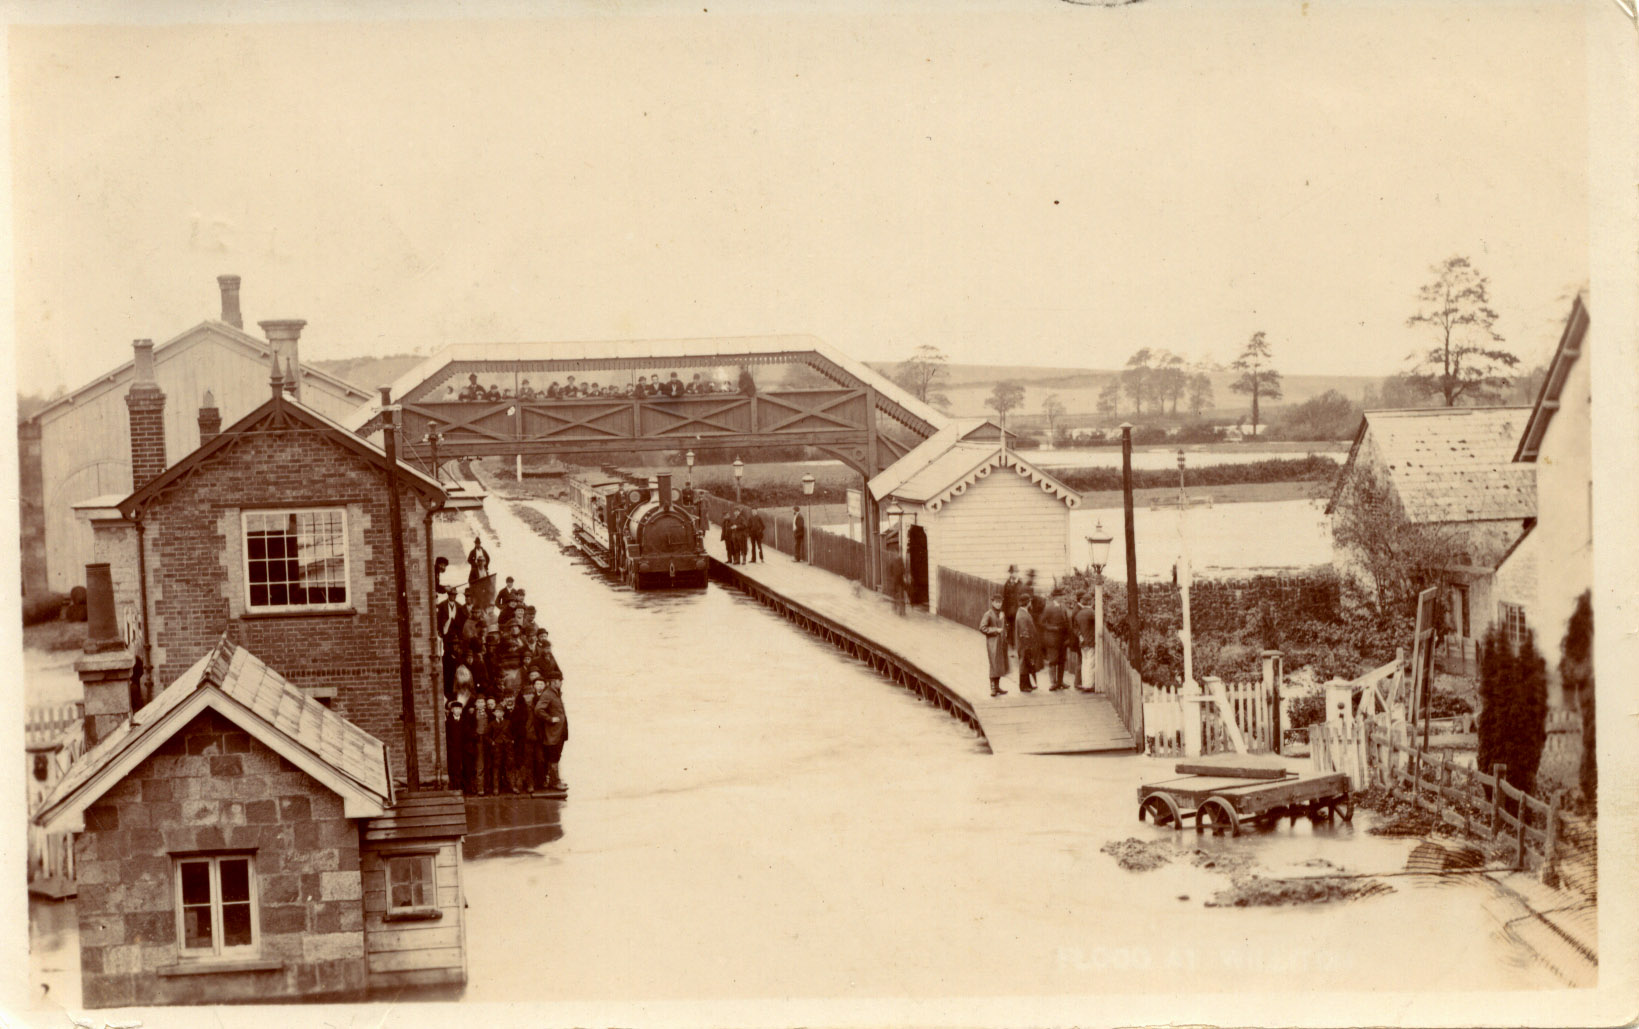 Williton Station Flooding November 1877 ©The John Alsop Collection